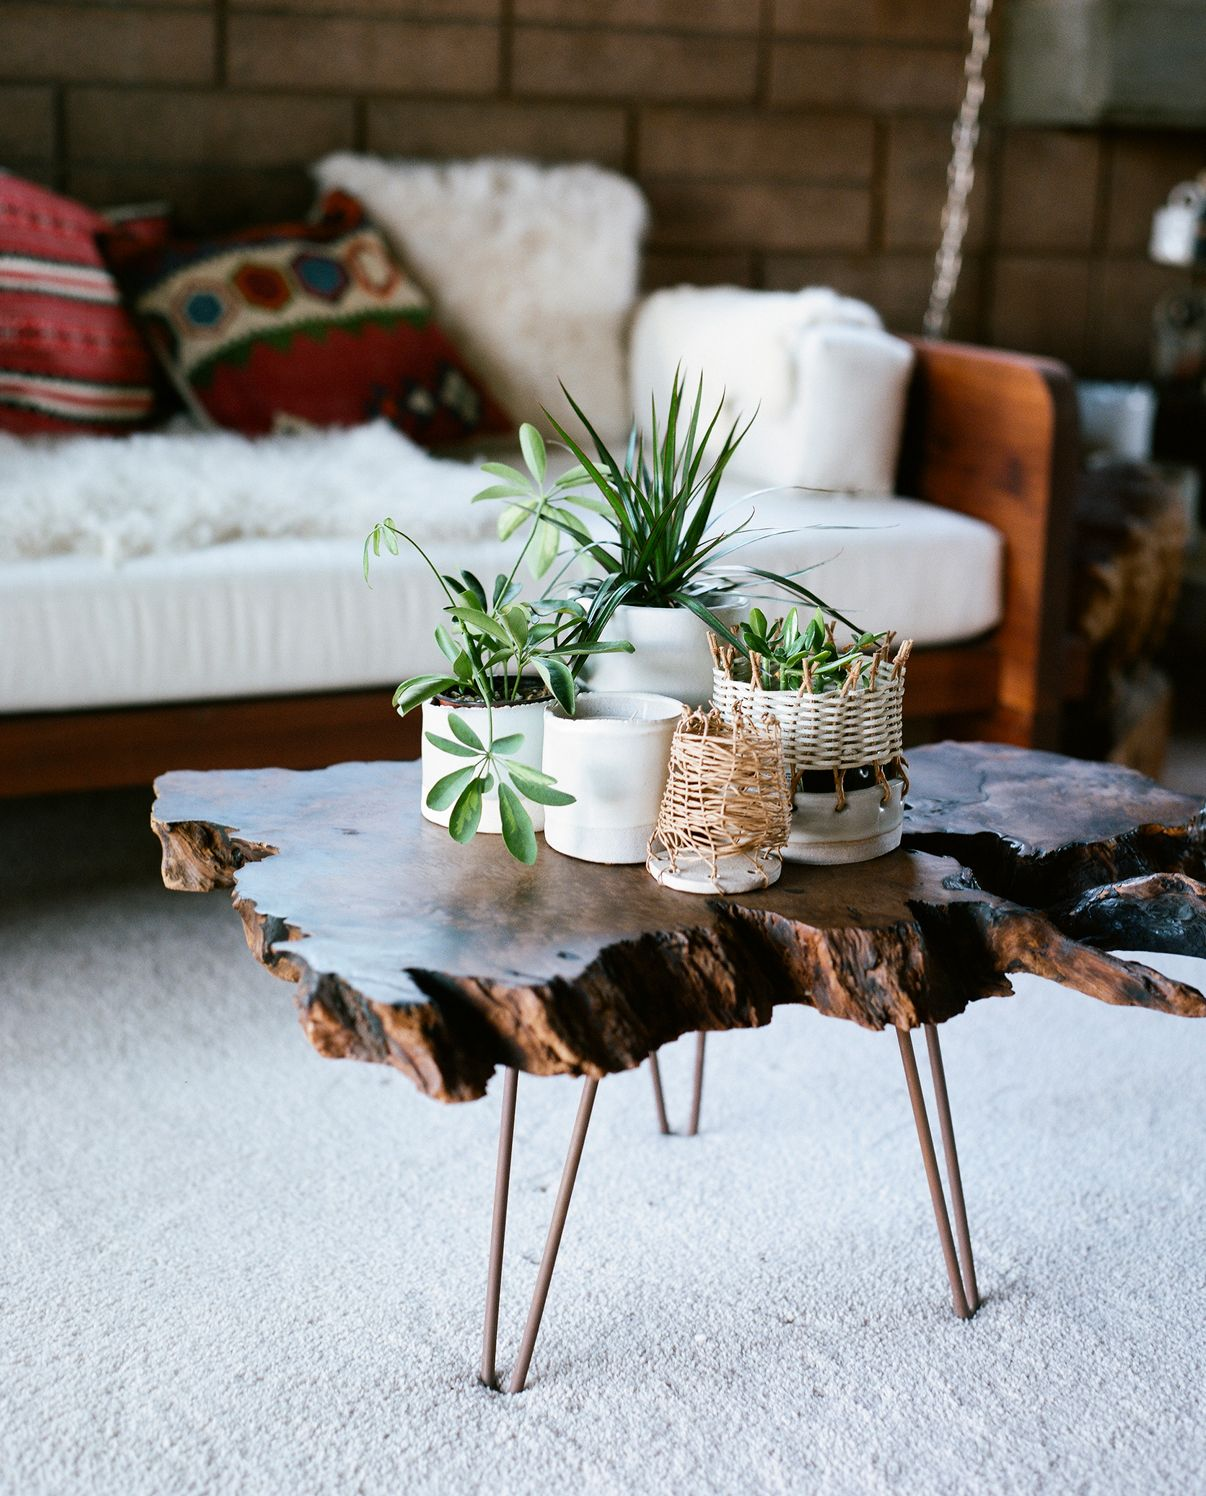 Tracy wilkinson natural wood coffee table wood coffee tables plants and natural wood coffee table geotapseo Gallery